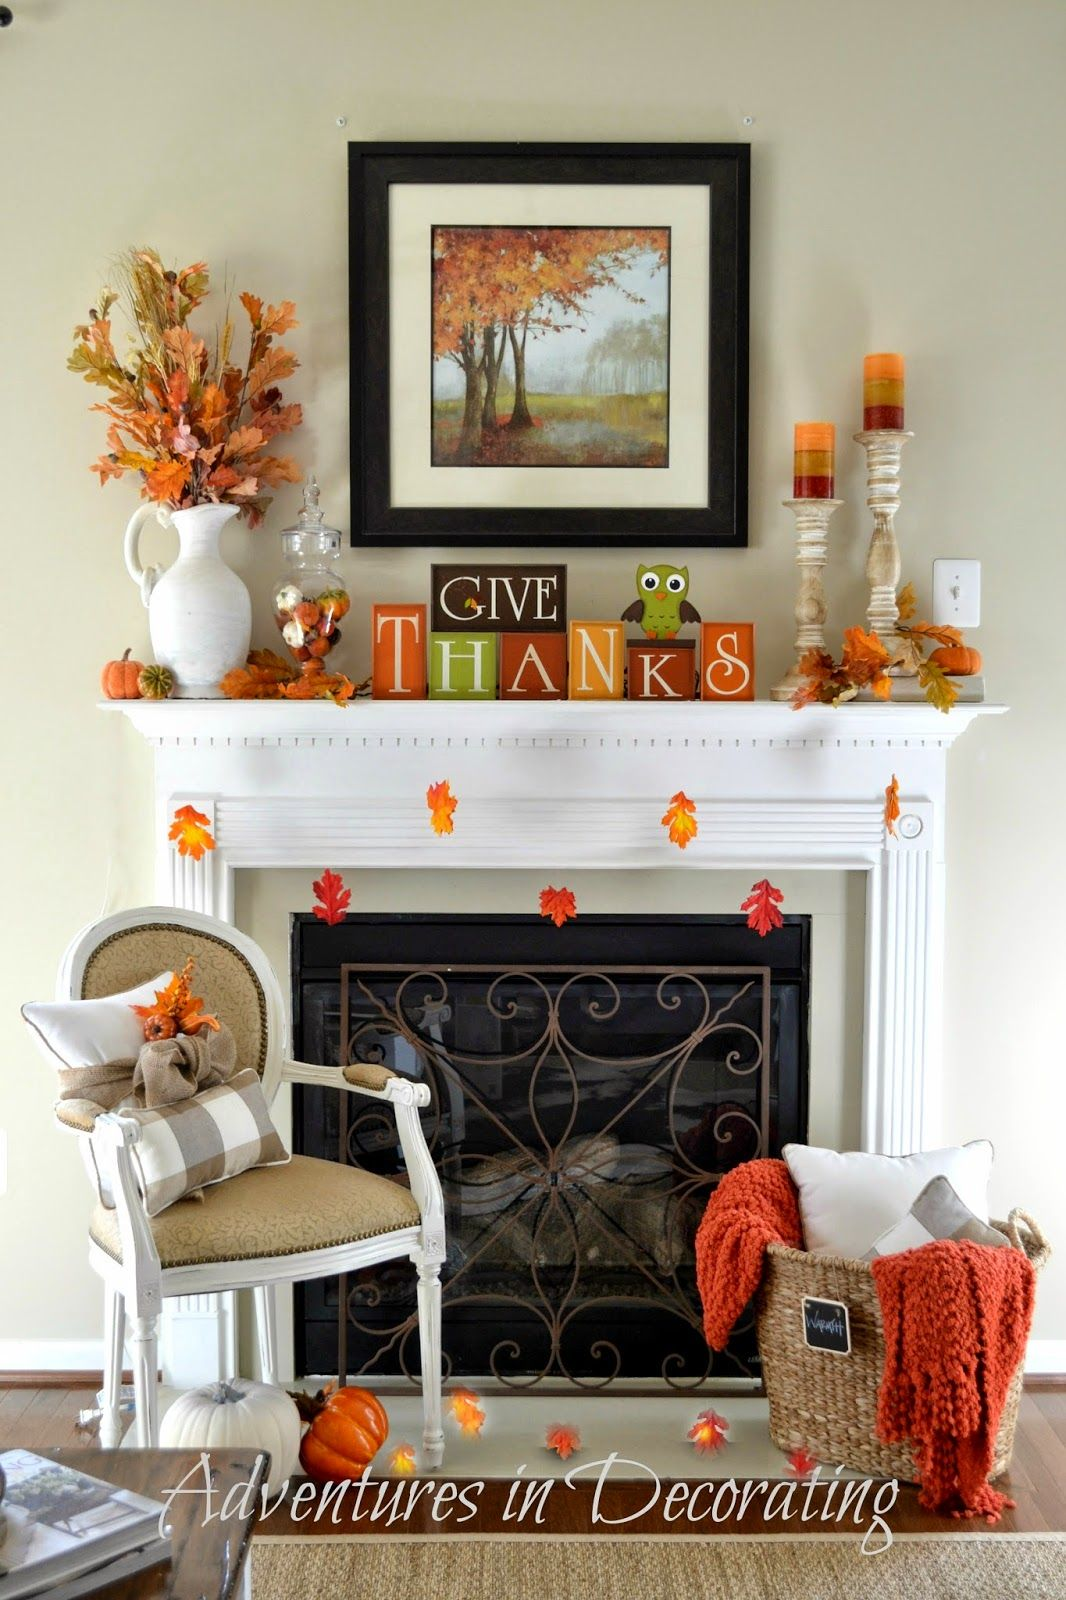 Adventures In Decorating Our Fall Kitchen: Our Simple Fall Mantel ... (Adventures In Decorating